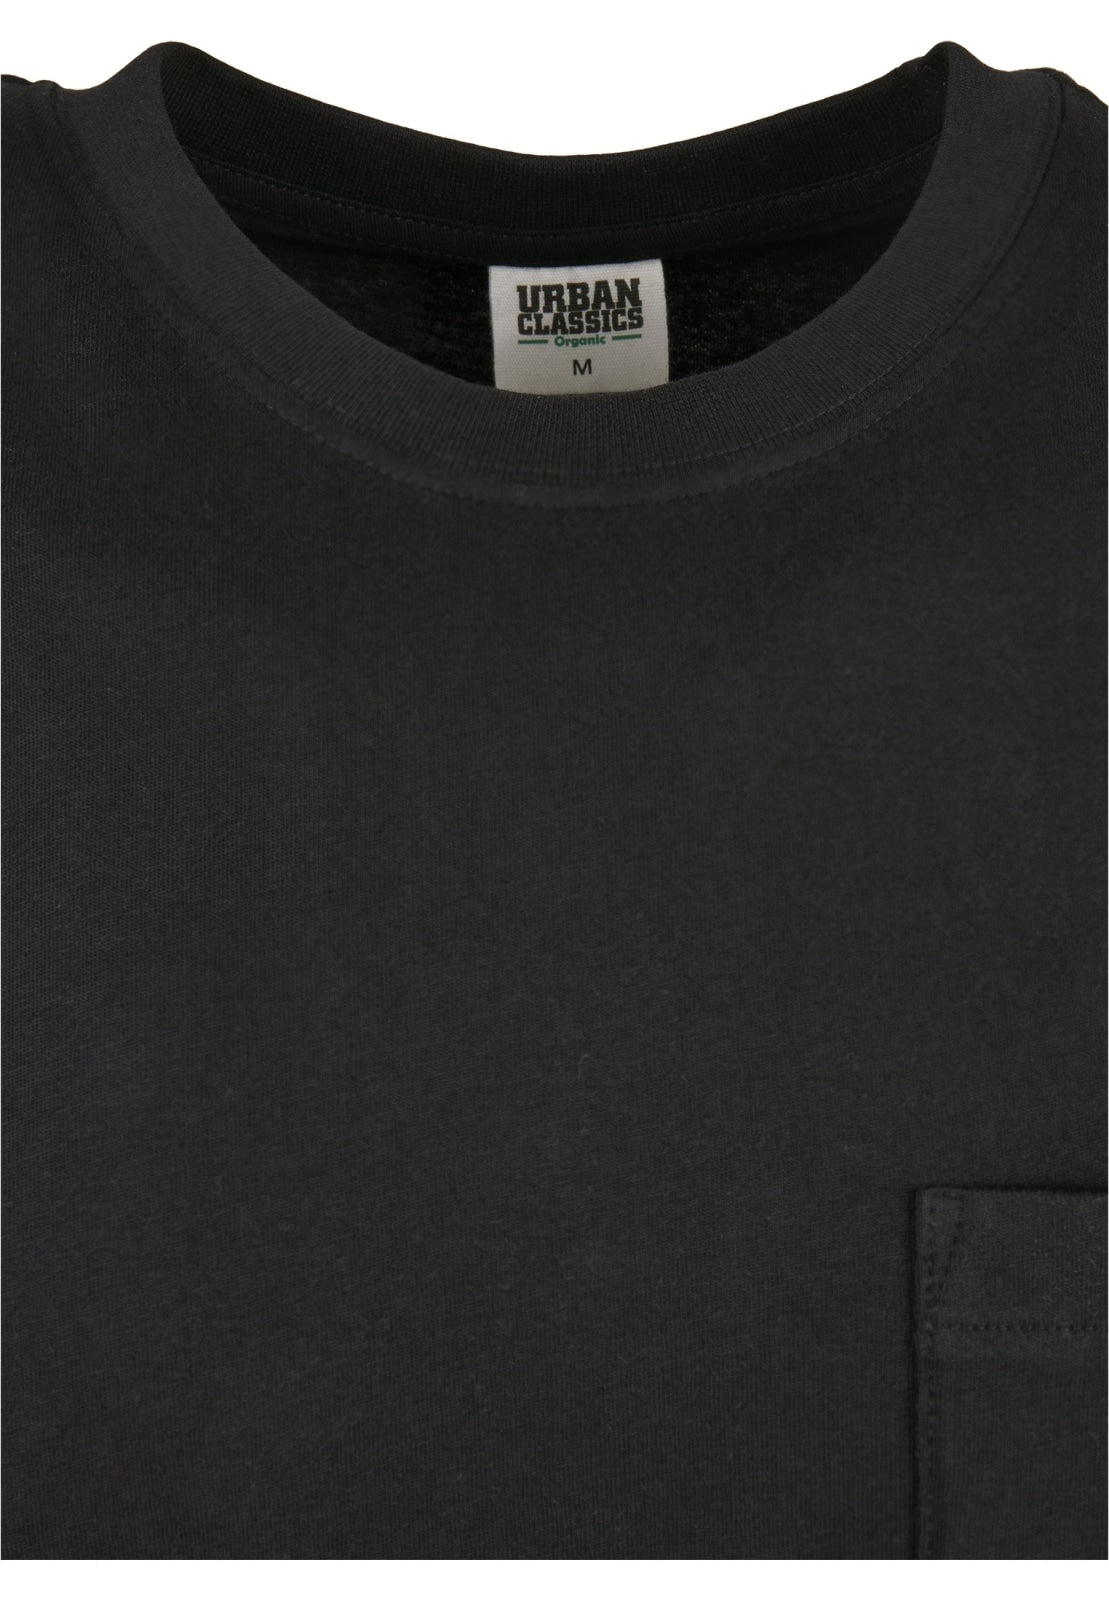 Organic Cotton Basic Pocket T-shirt 2-pack (s-5xl) Black + White T-shirt Urban Classics